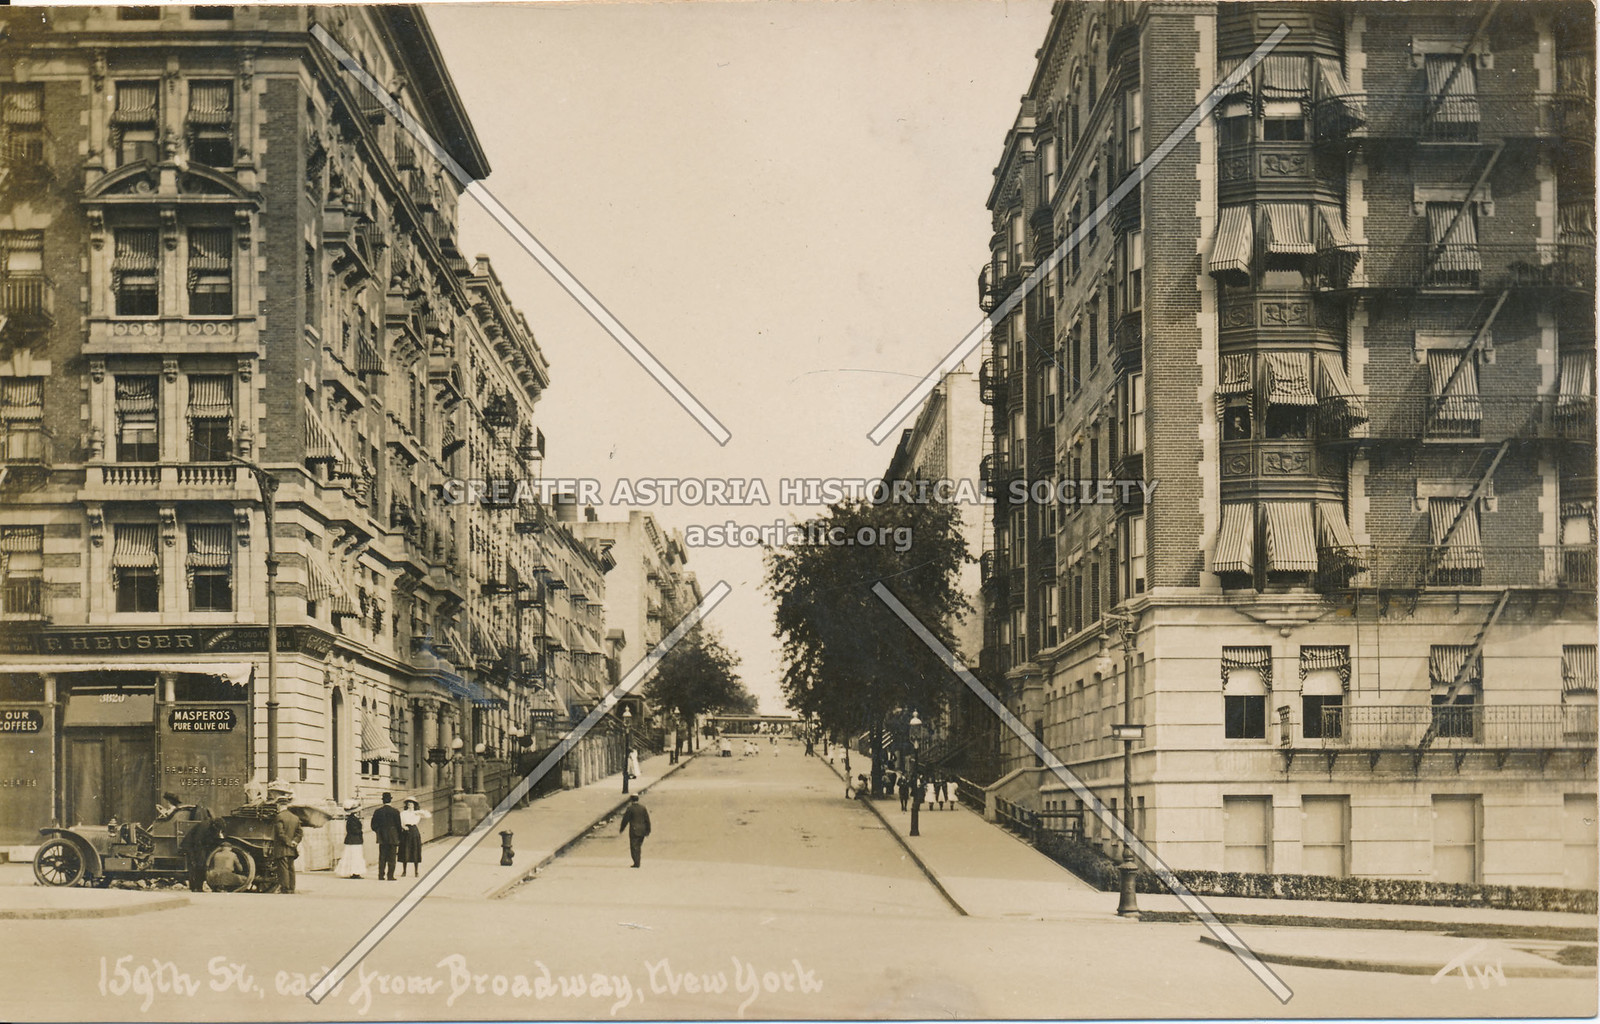 159th St., East from Broadway, N.Y.